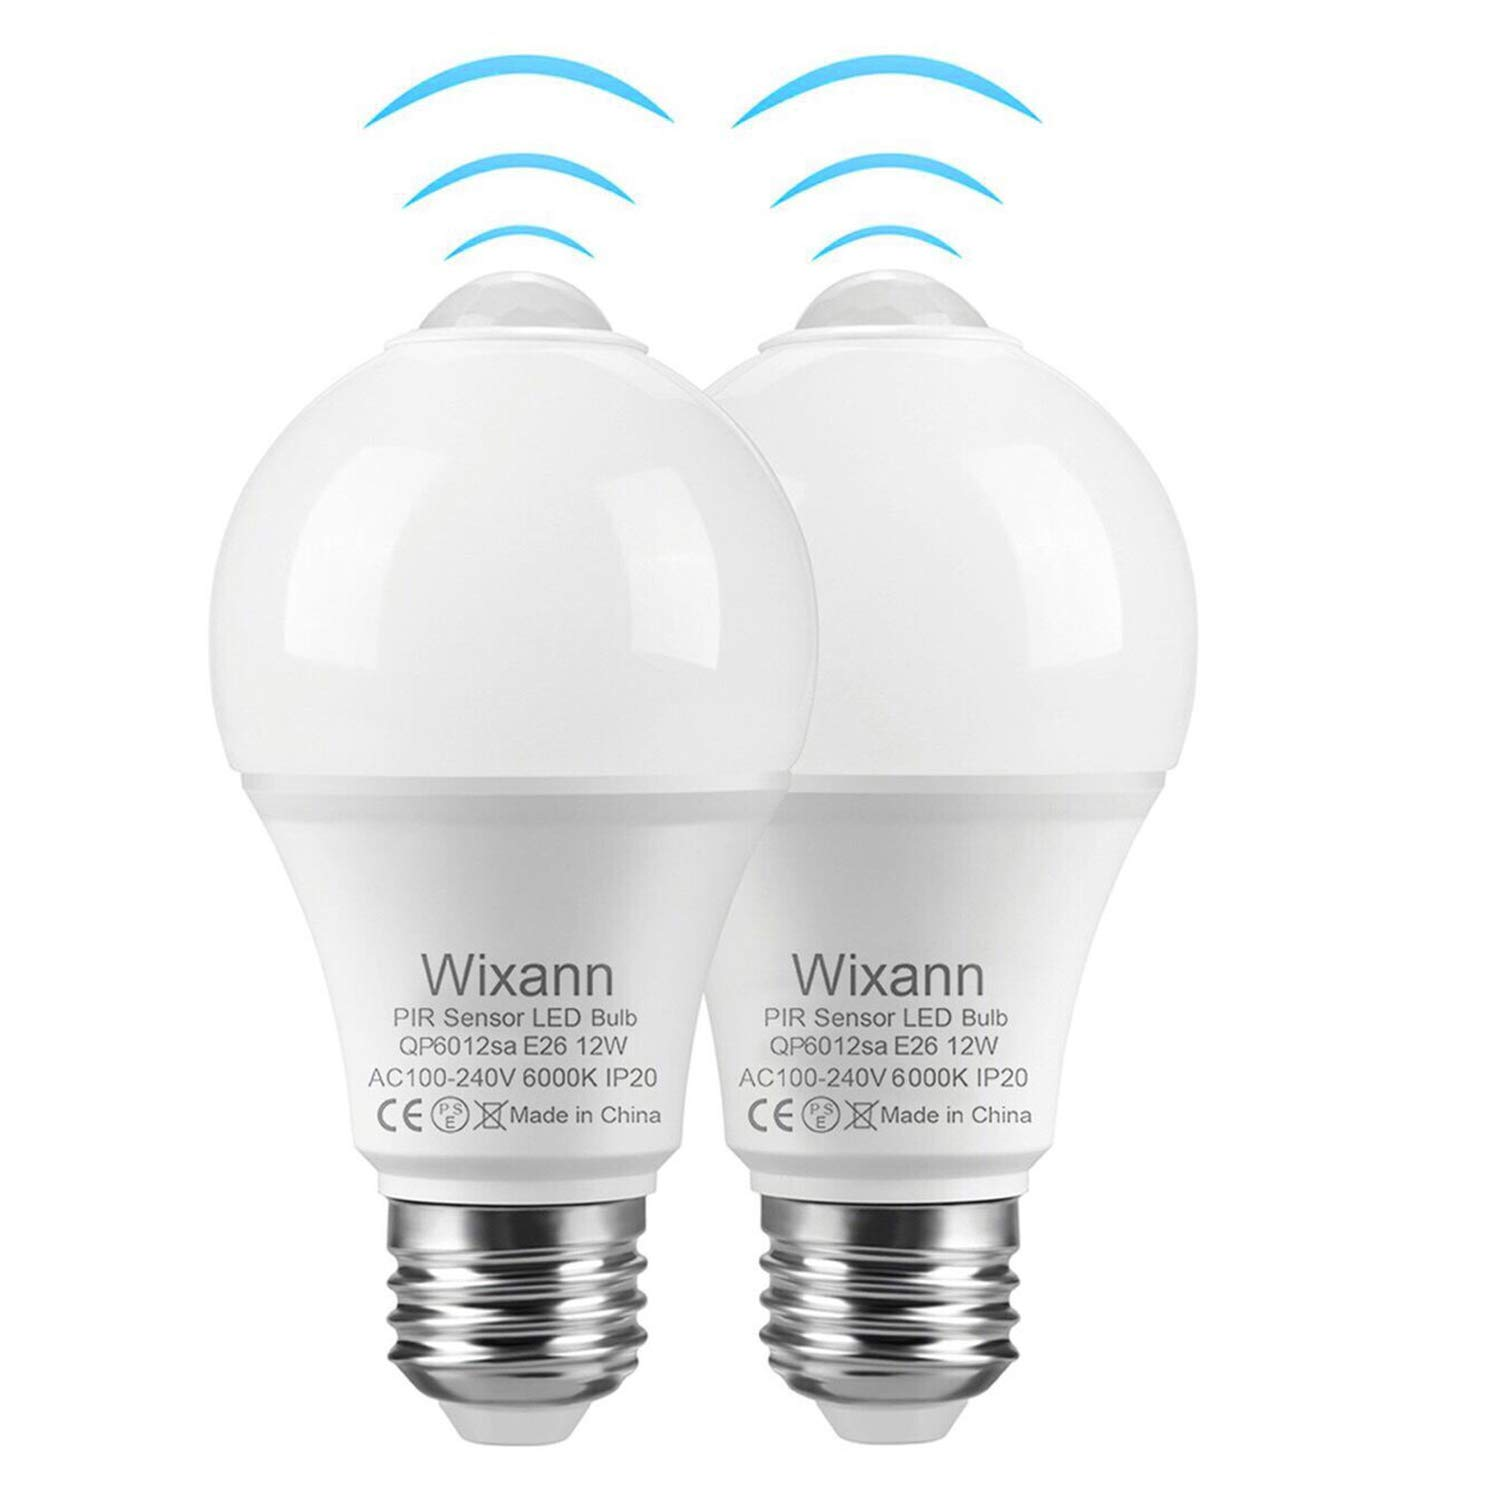 Smart Motion Sensor Light Bulbs, Built-in Motion Detector and Photocell Sensor, Automatic on/Off, Dusk to Dawn, A19/E26/120V/12W/1000lm for Porch Hallway Stairs Garage (2Pack, 6000K Cool White)